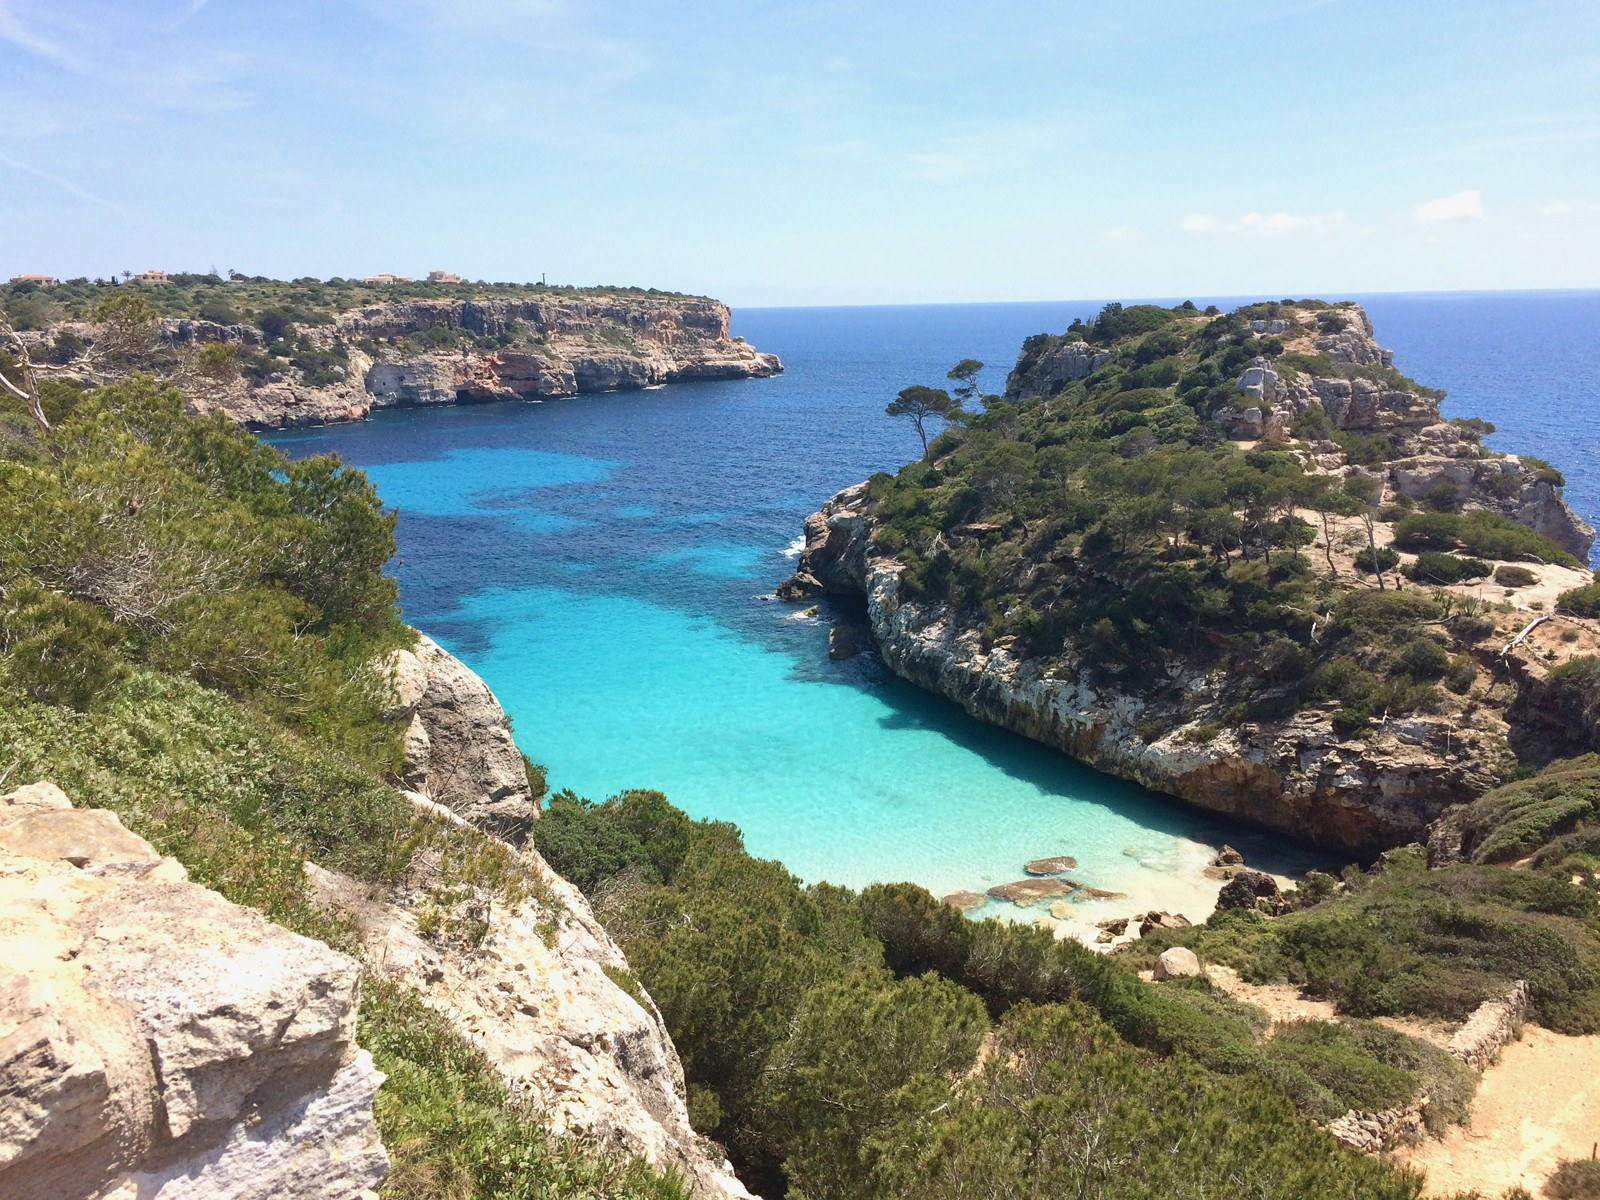 Caló des Moro is one of the most spectacular coves of Majorca